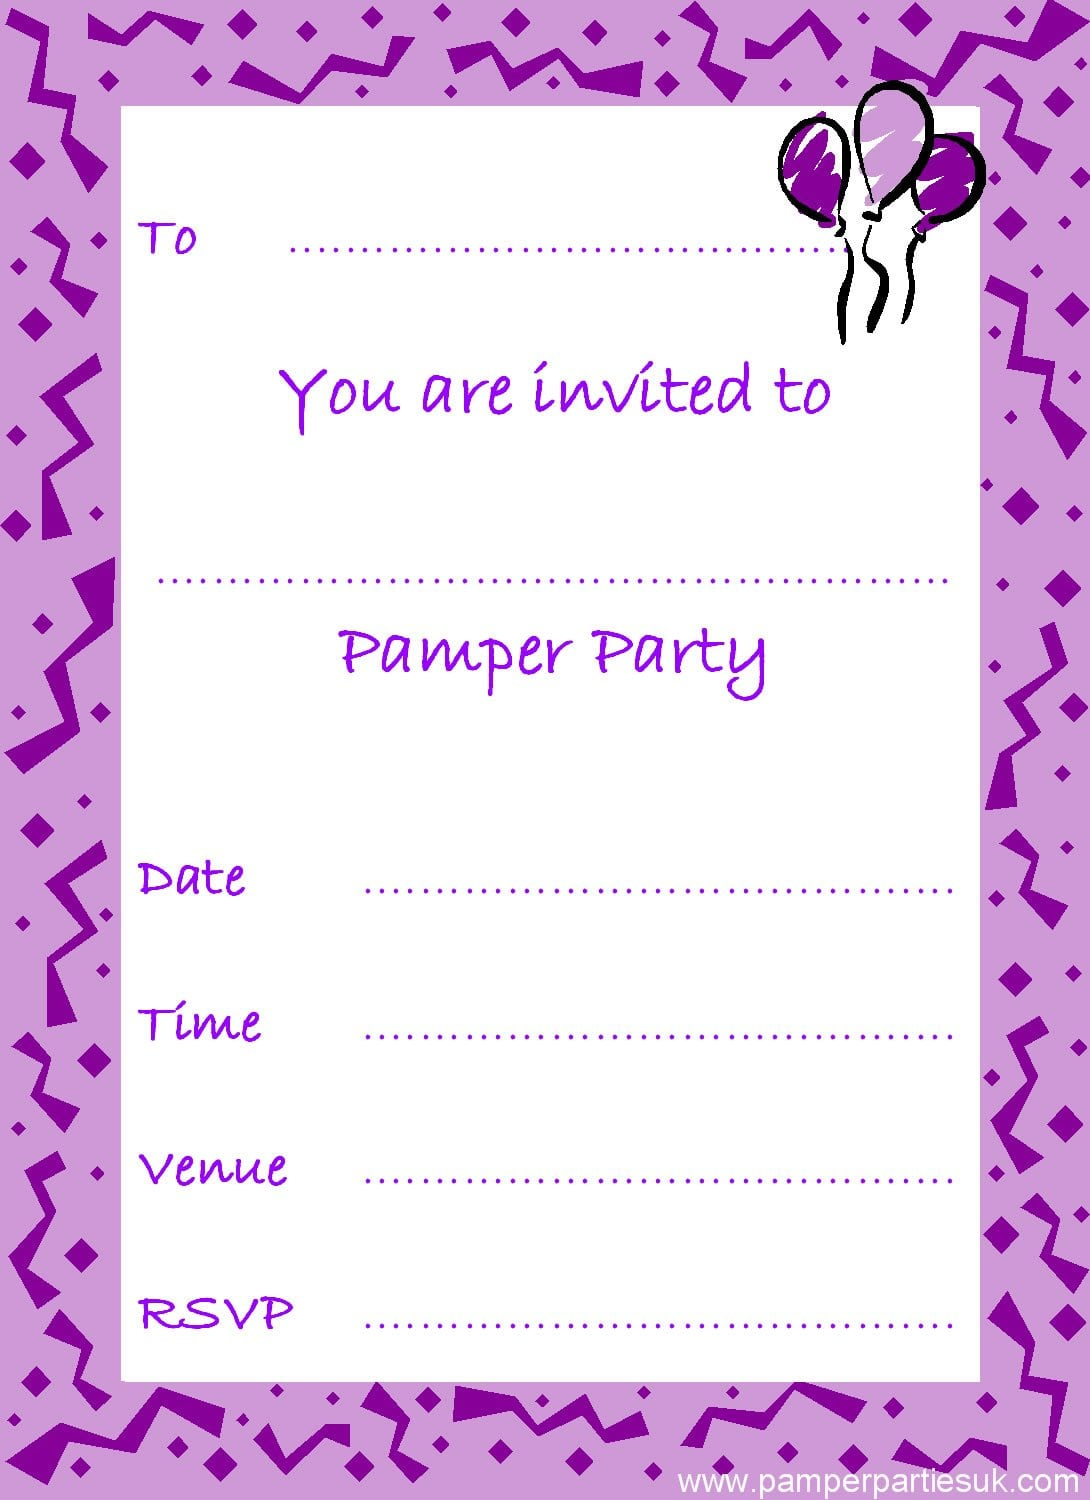 Free Printable Pamper Party Invitations